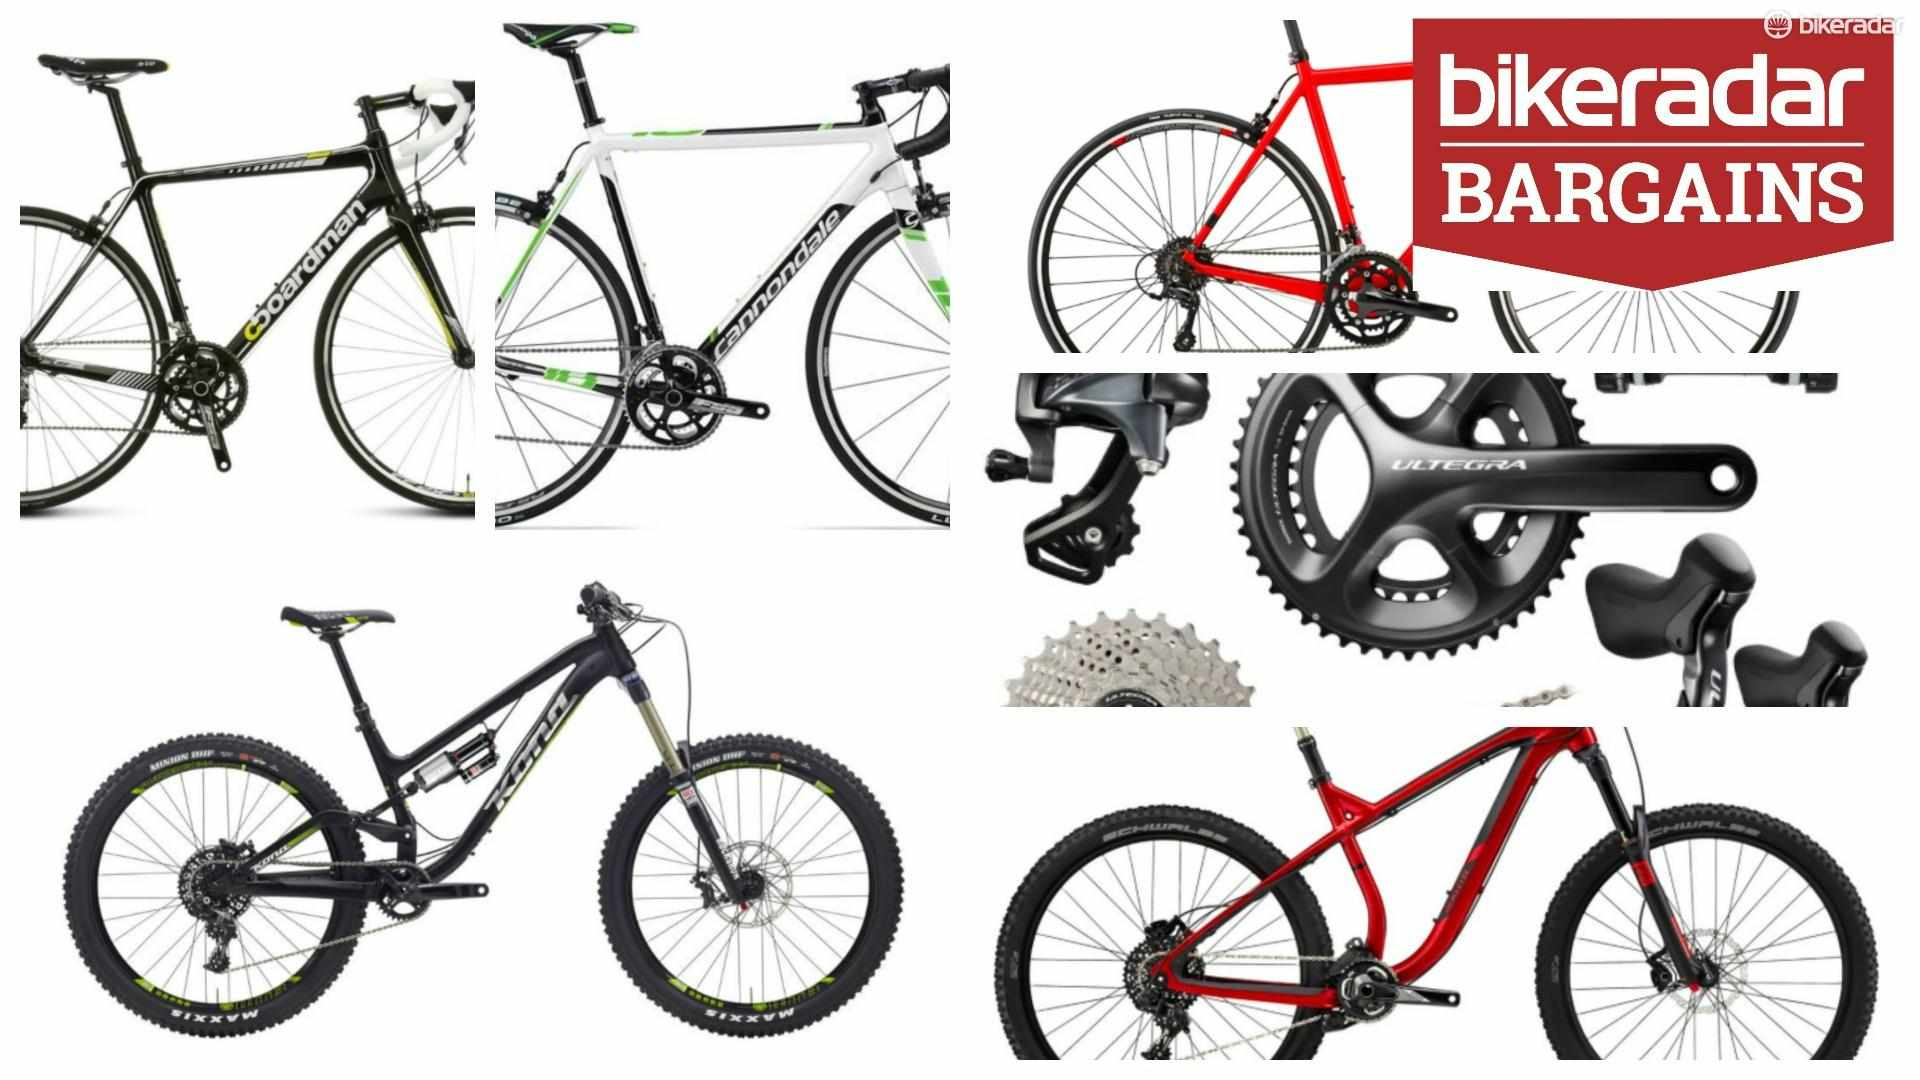 Bike bargains galore in the January sales